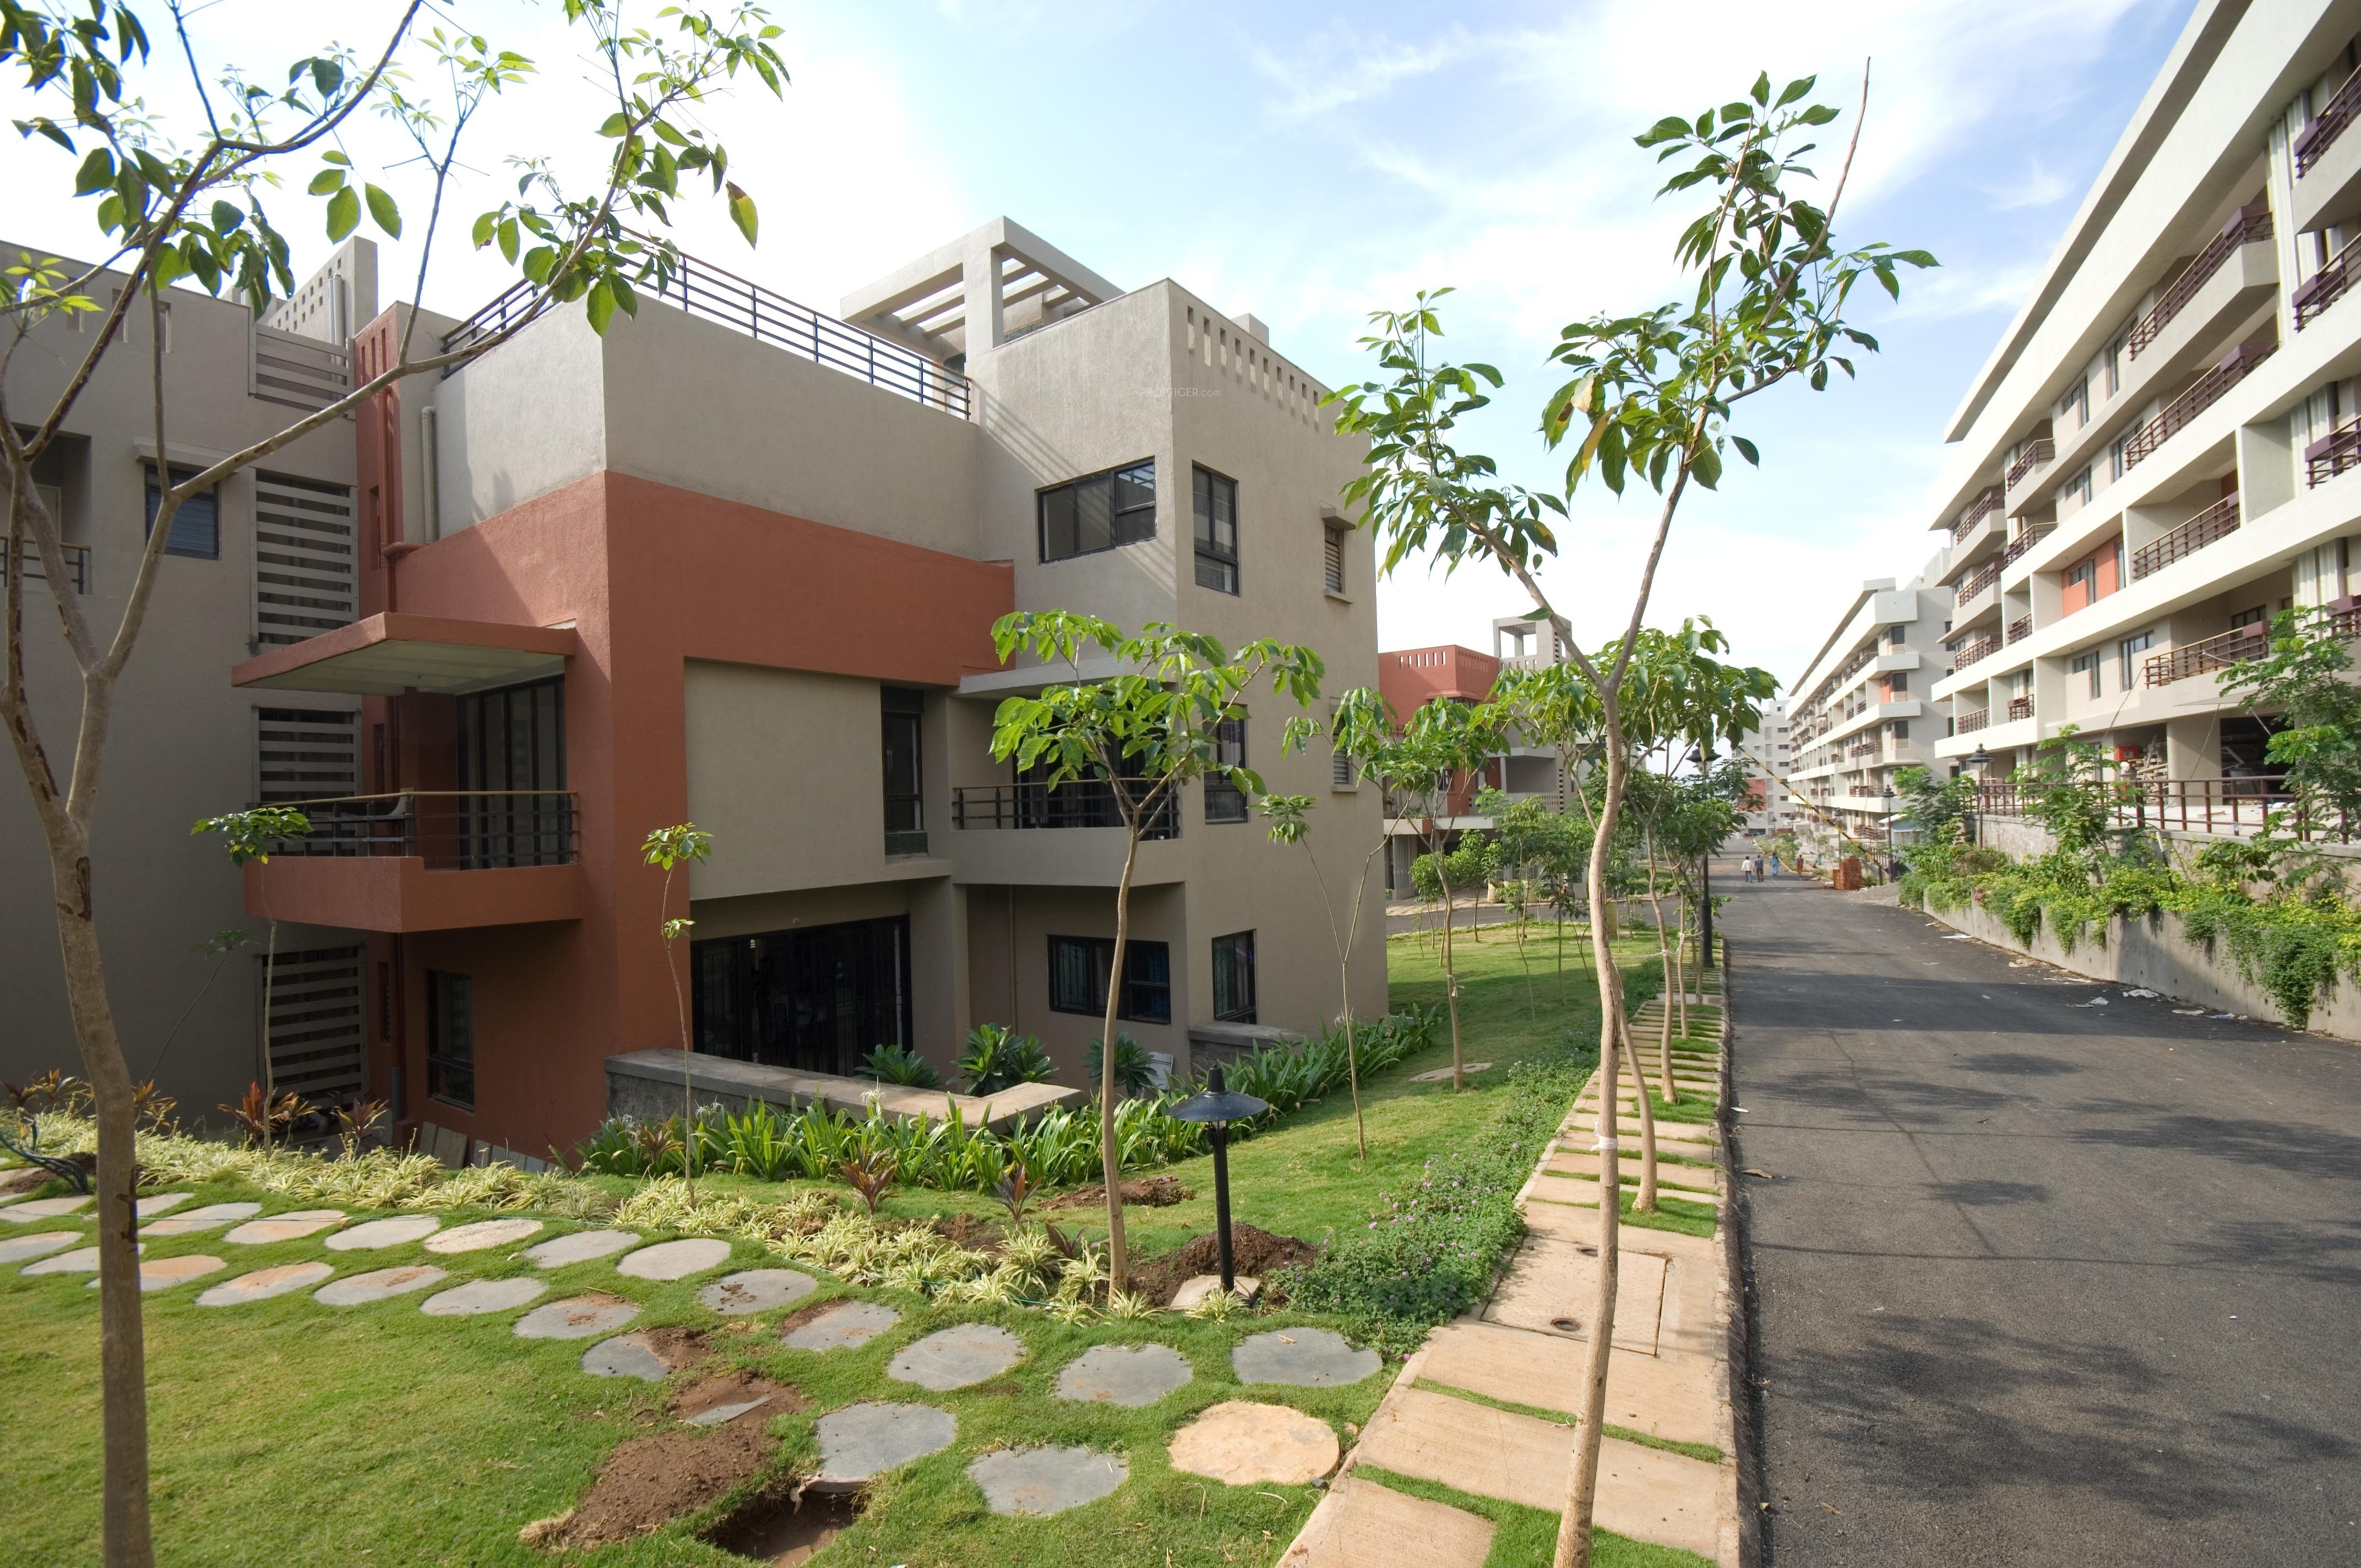 2600 sq ft 3 bhk 3t apartment for sale in mahindra for 2600 sq ft house cost